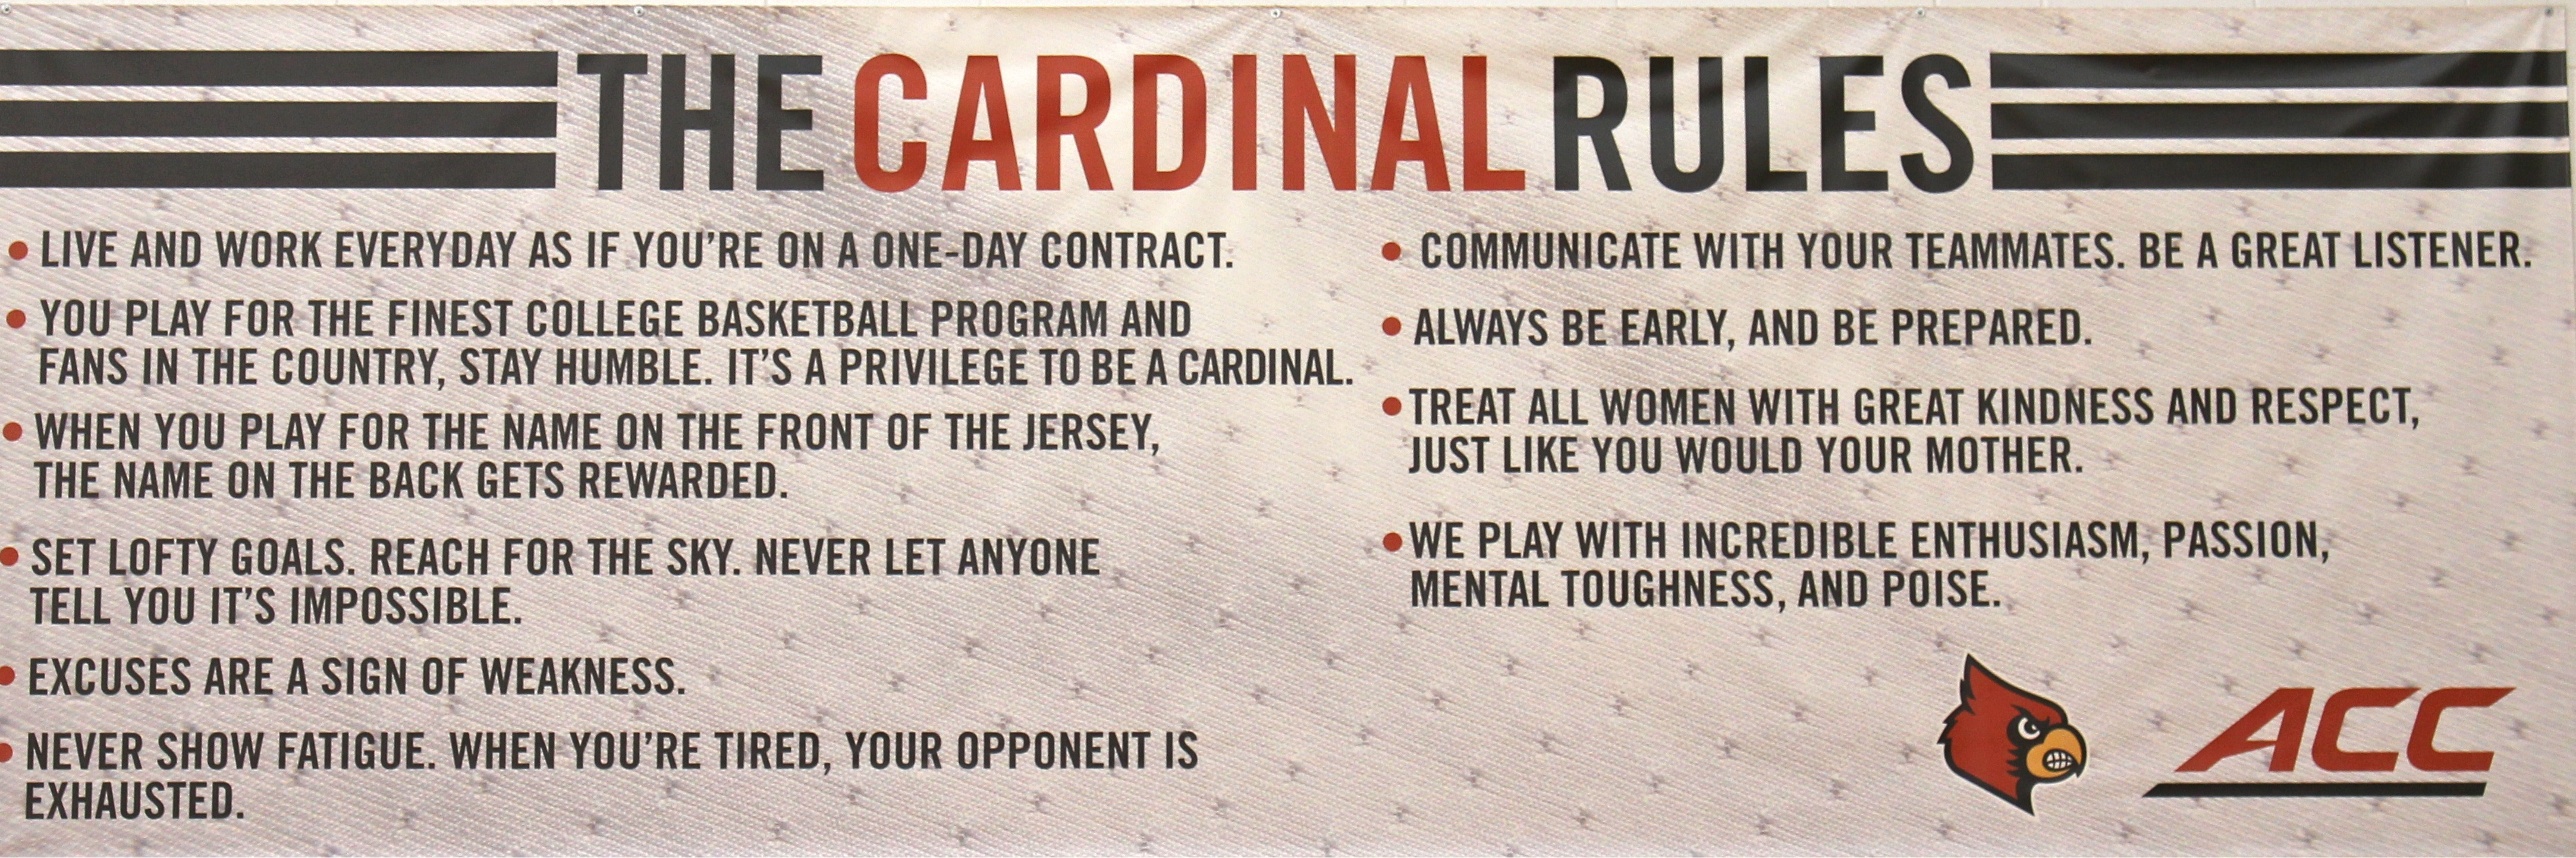 """Cardinal Rules"" posted for players in the Yum! practice center on campus"